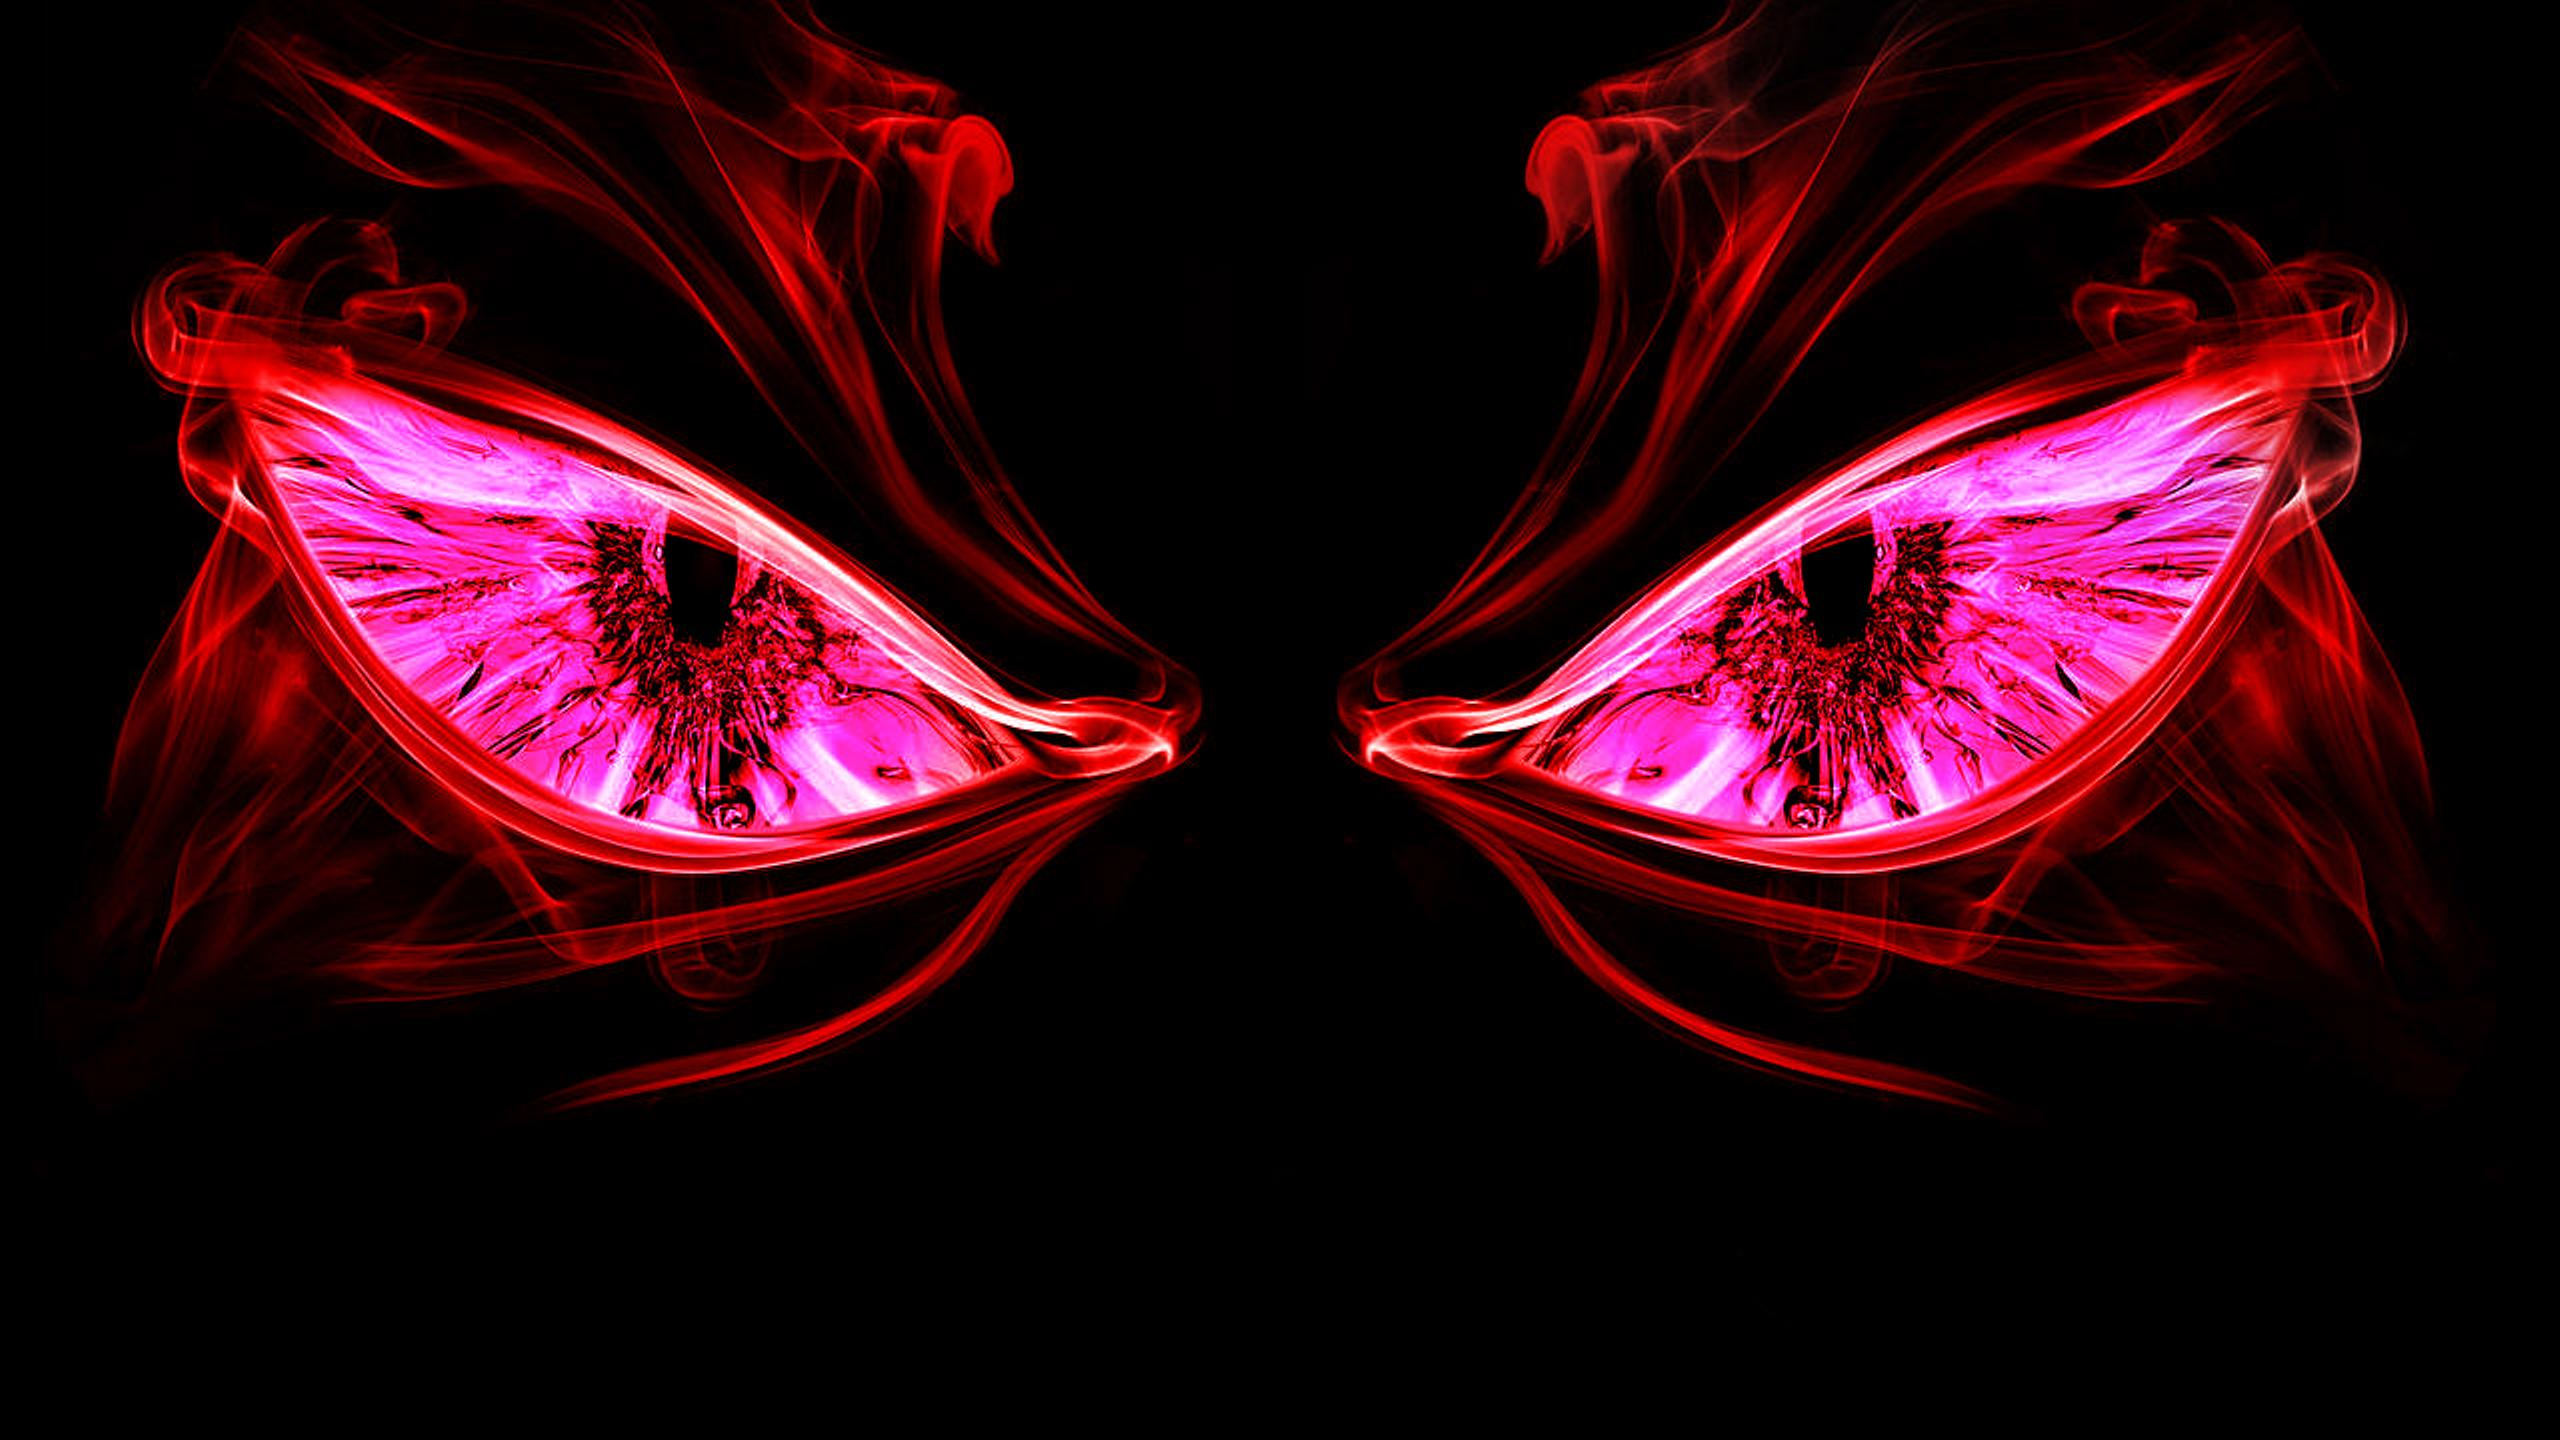 Two Scary Red Eyes In The Night Wallpaper Download 2560x1440